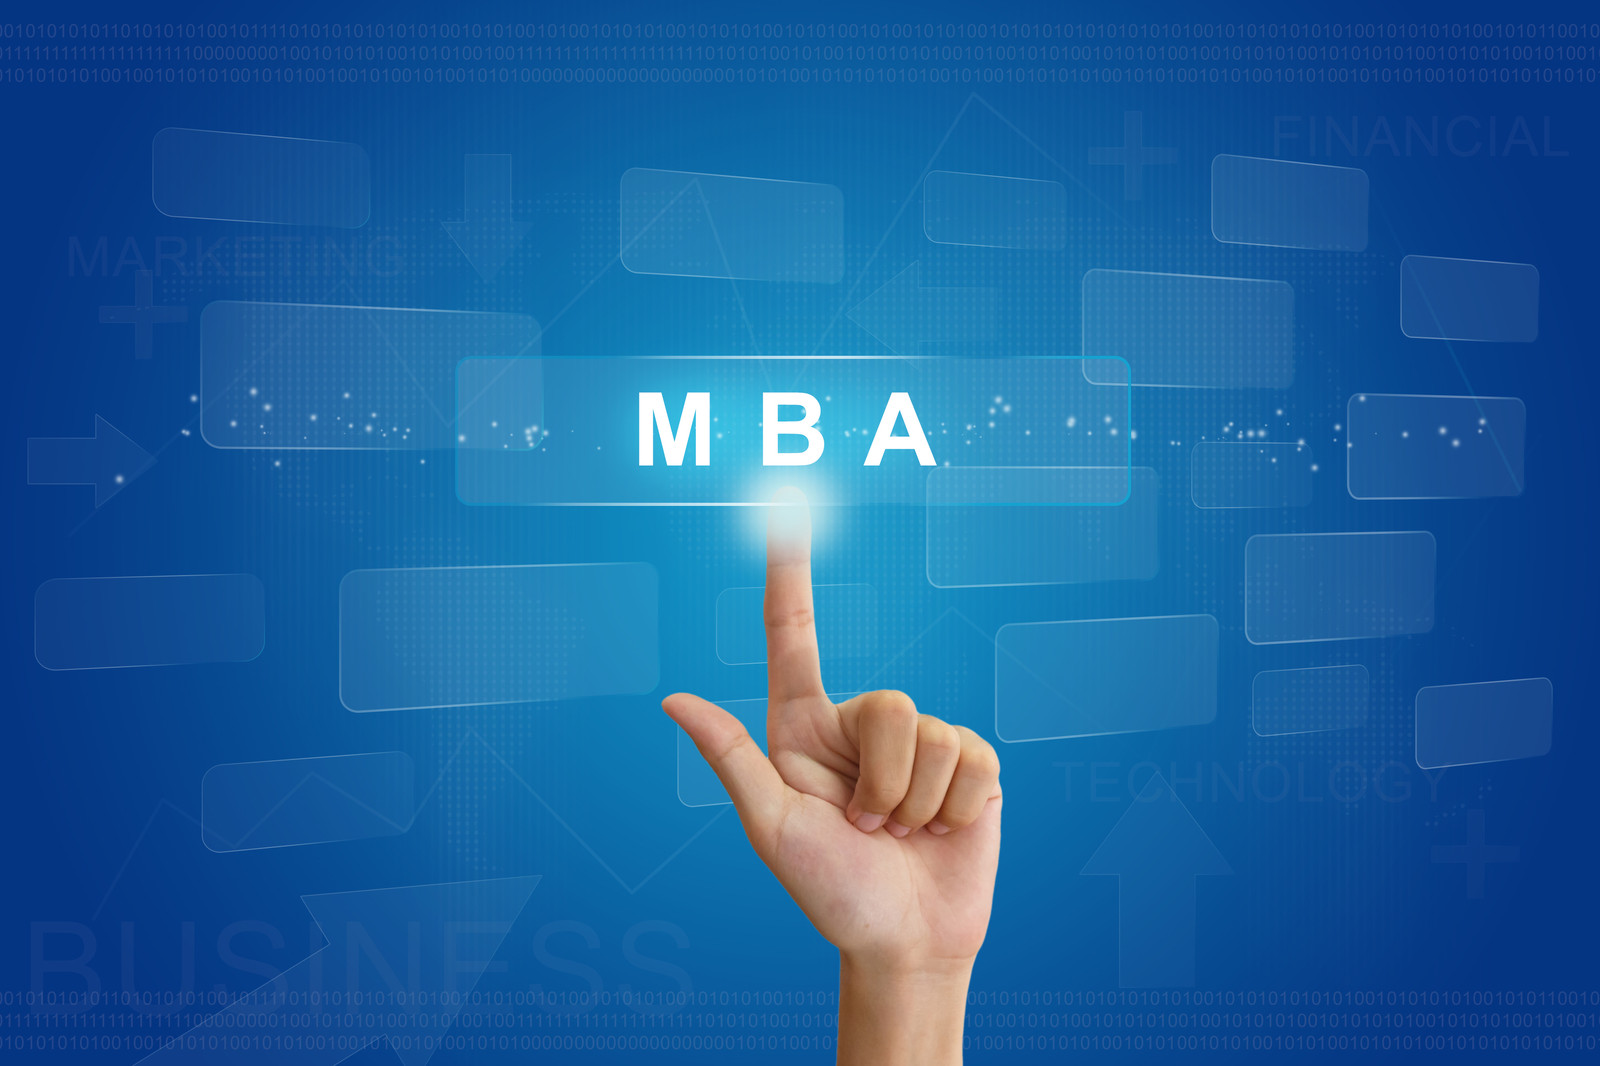 Top 10 MBA Collage Haryana iiodij - University College Admission MBA Distance Education in Solan